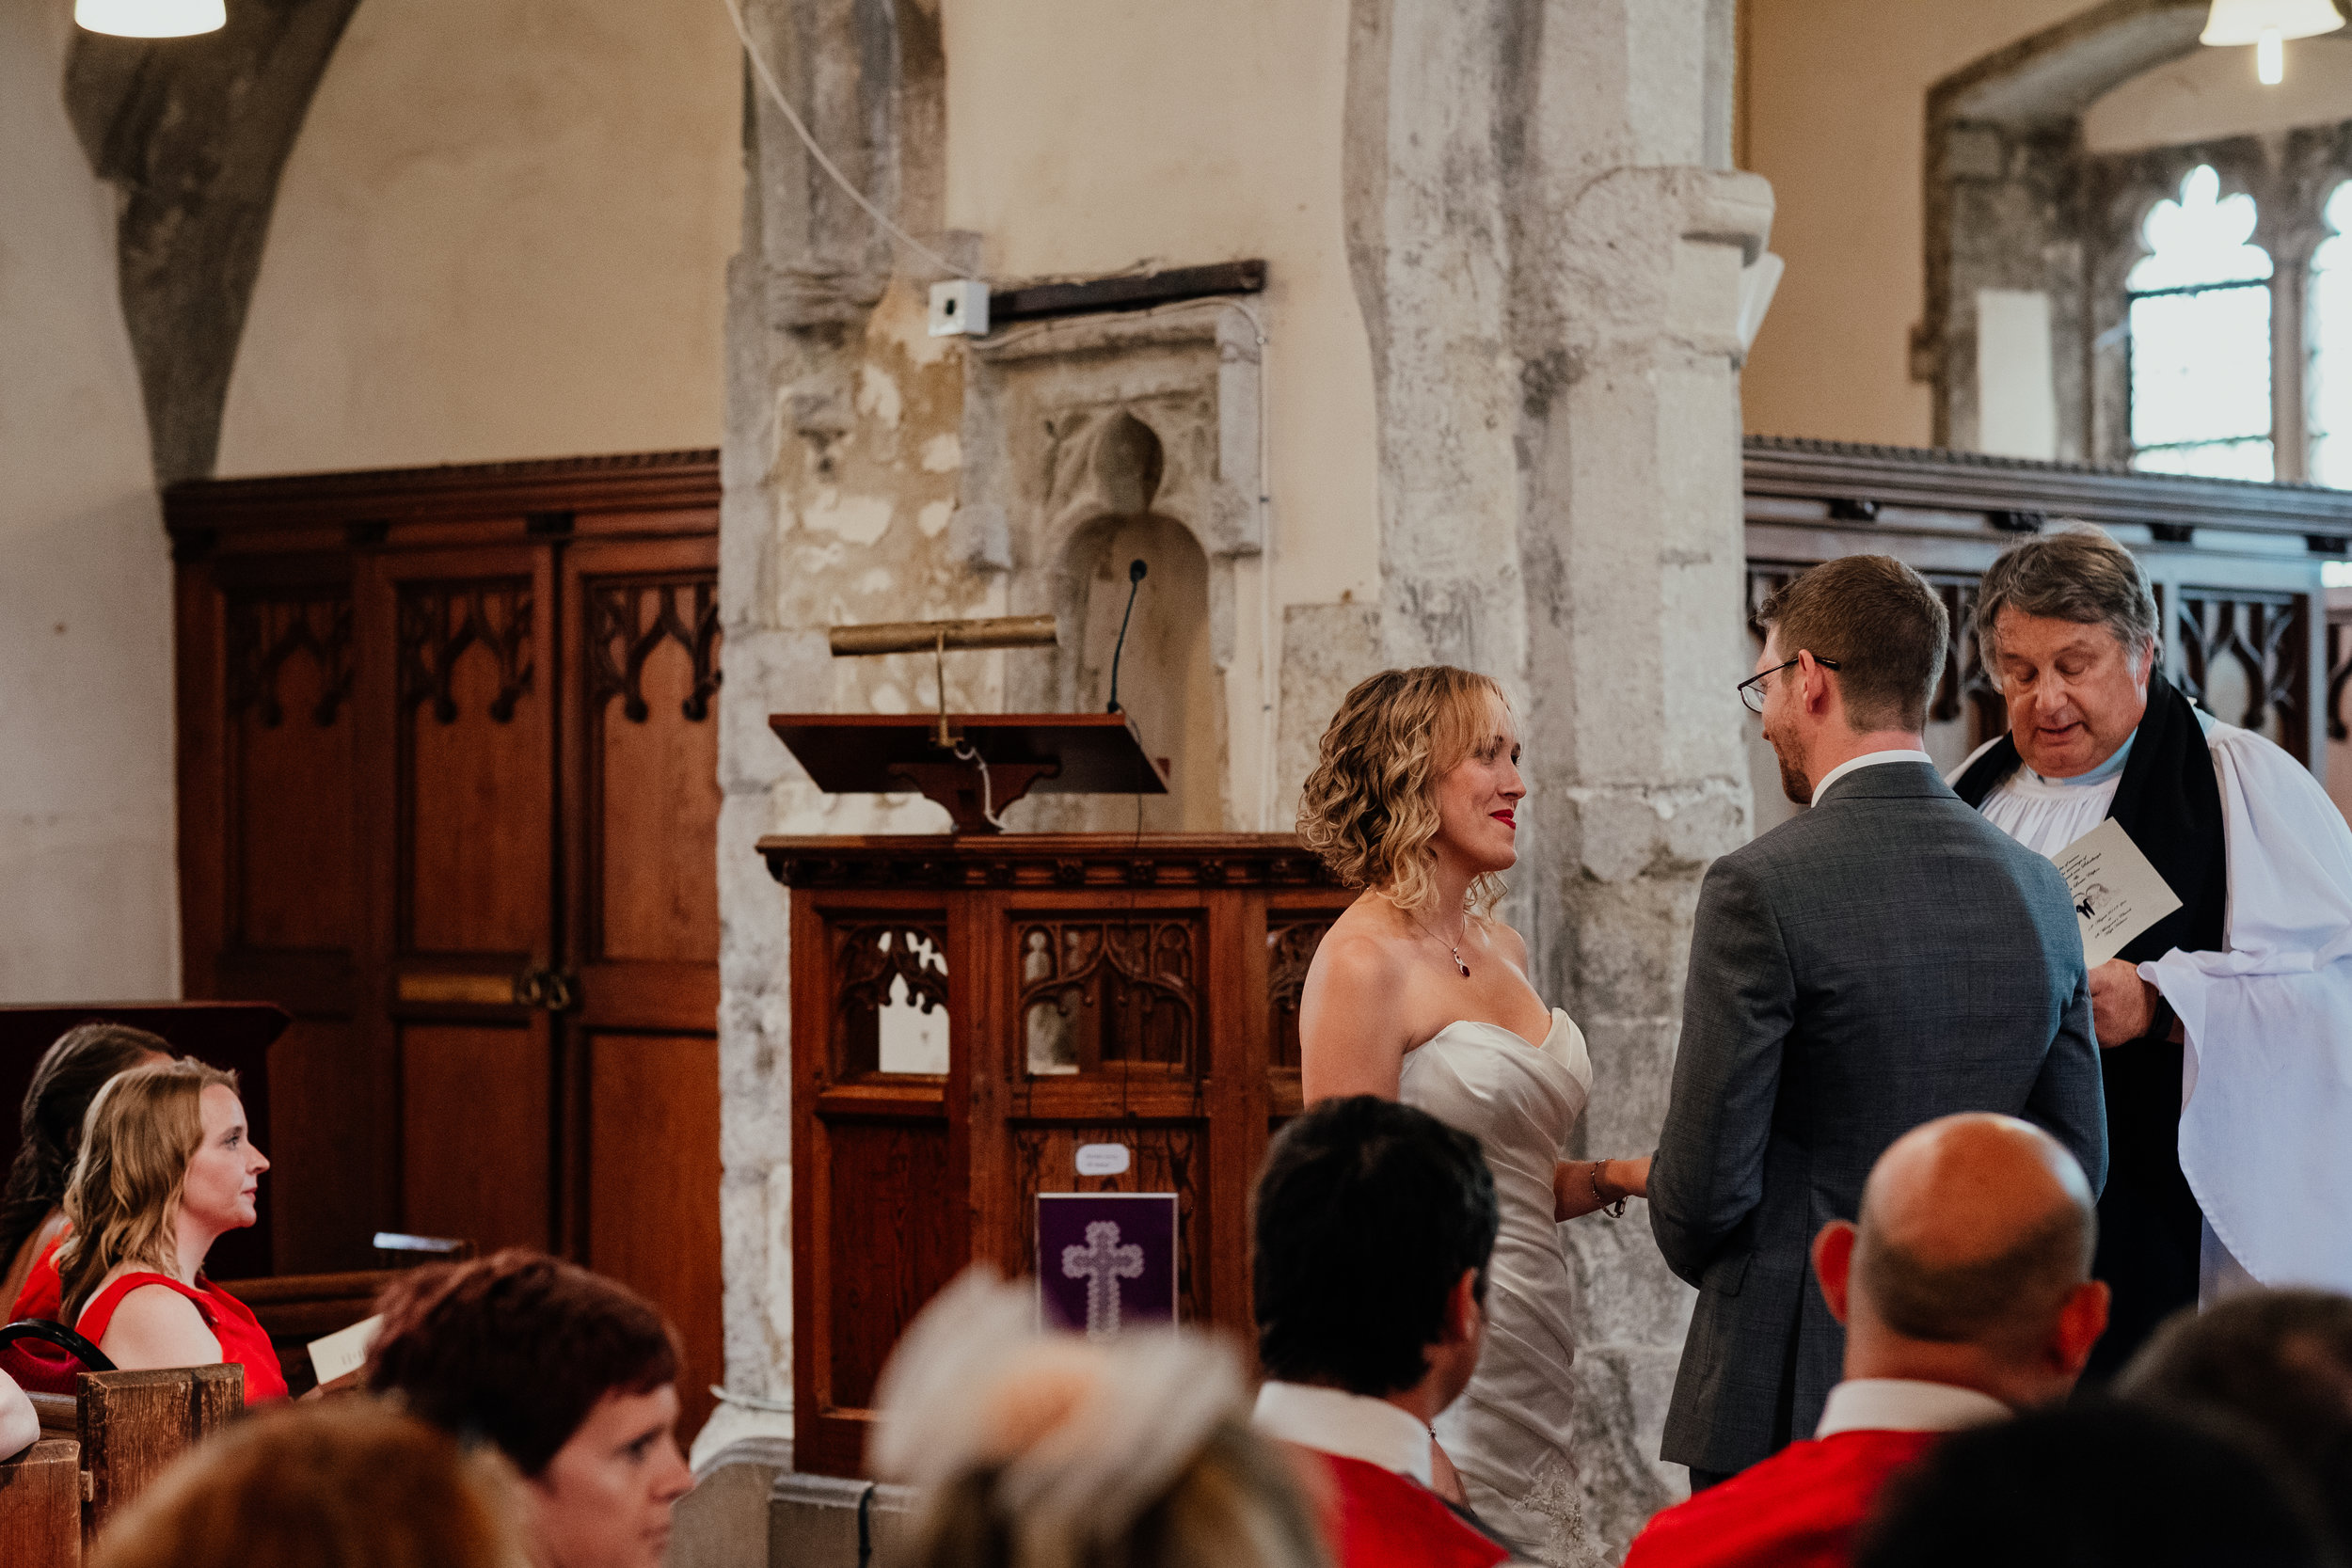 Bride and groom exchanging vows during church wedding